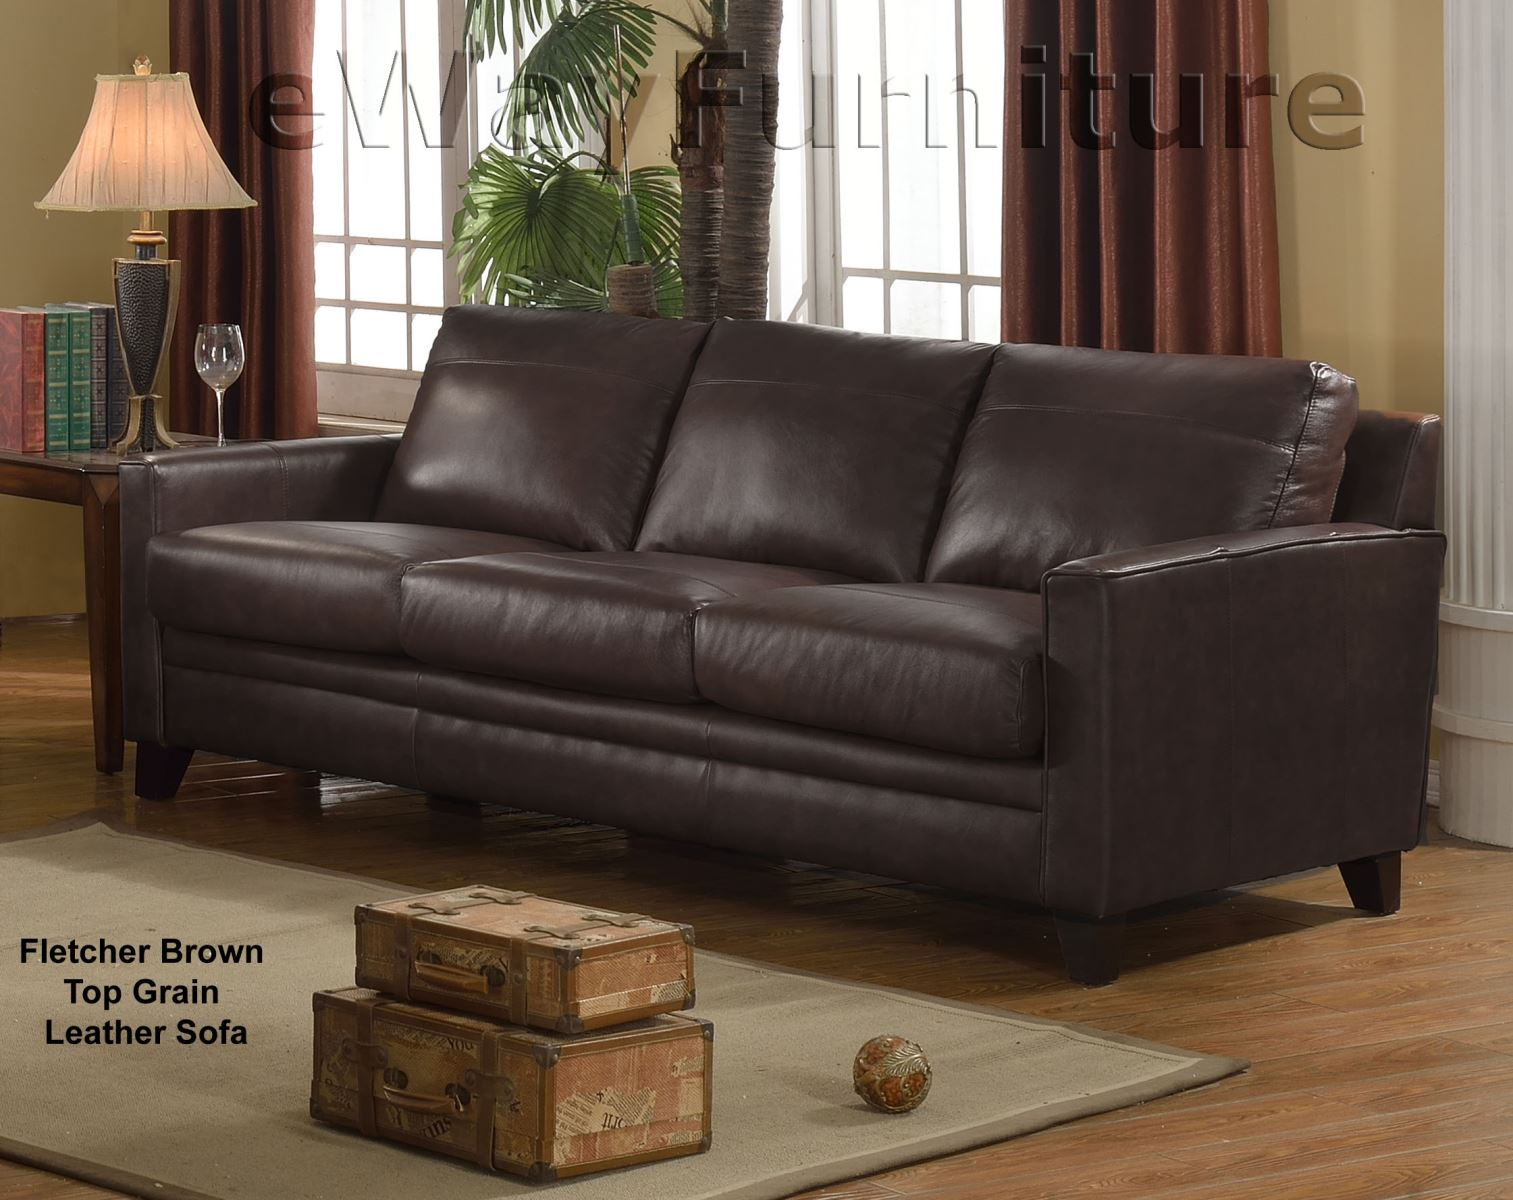 Similar Items. Fletcher Brown Top Grain Leather Loveseat